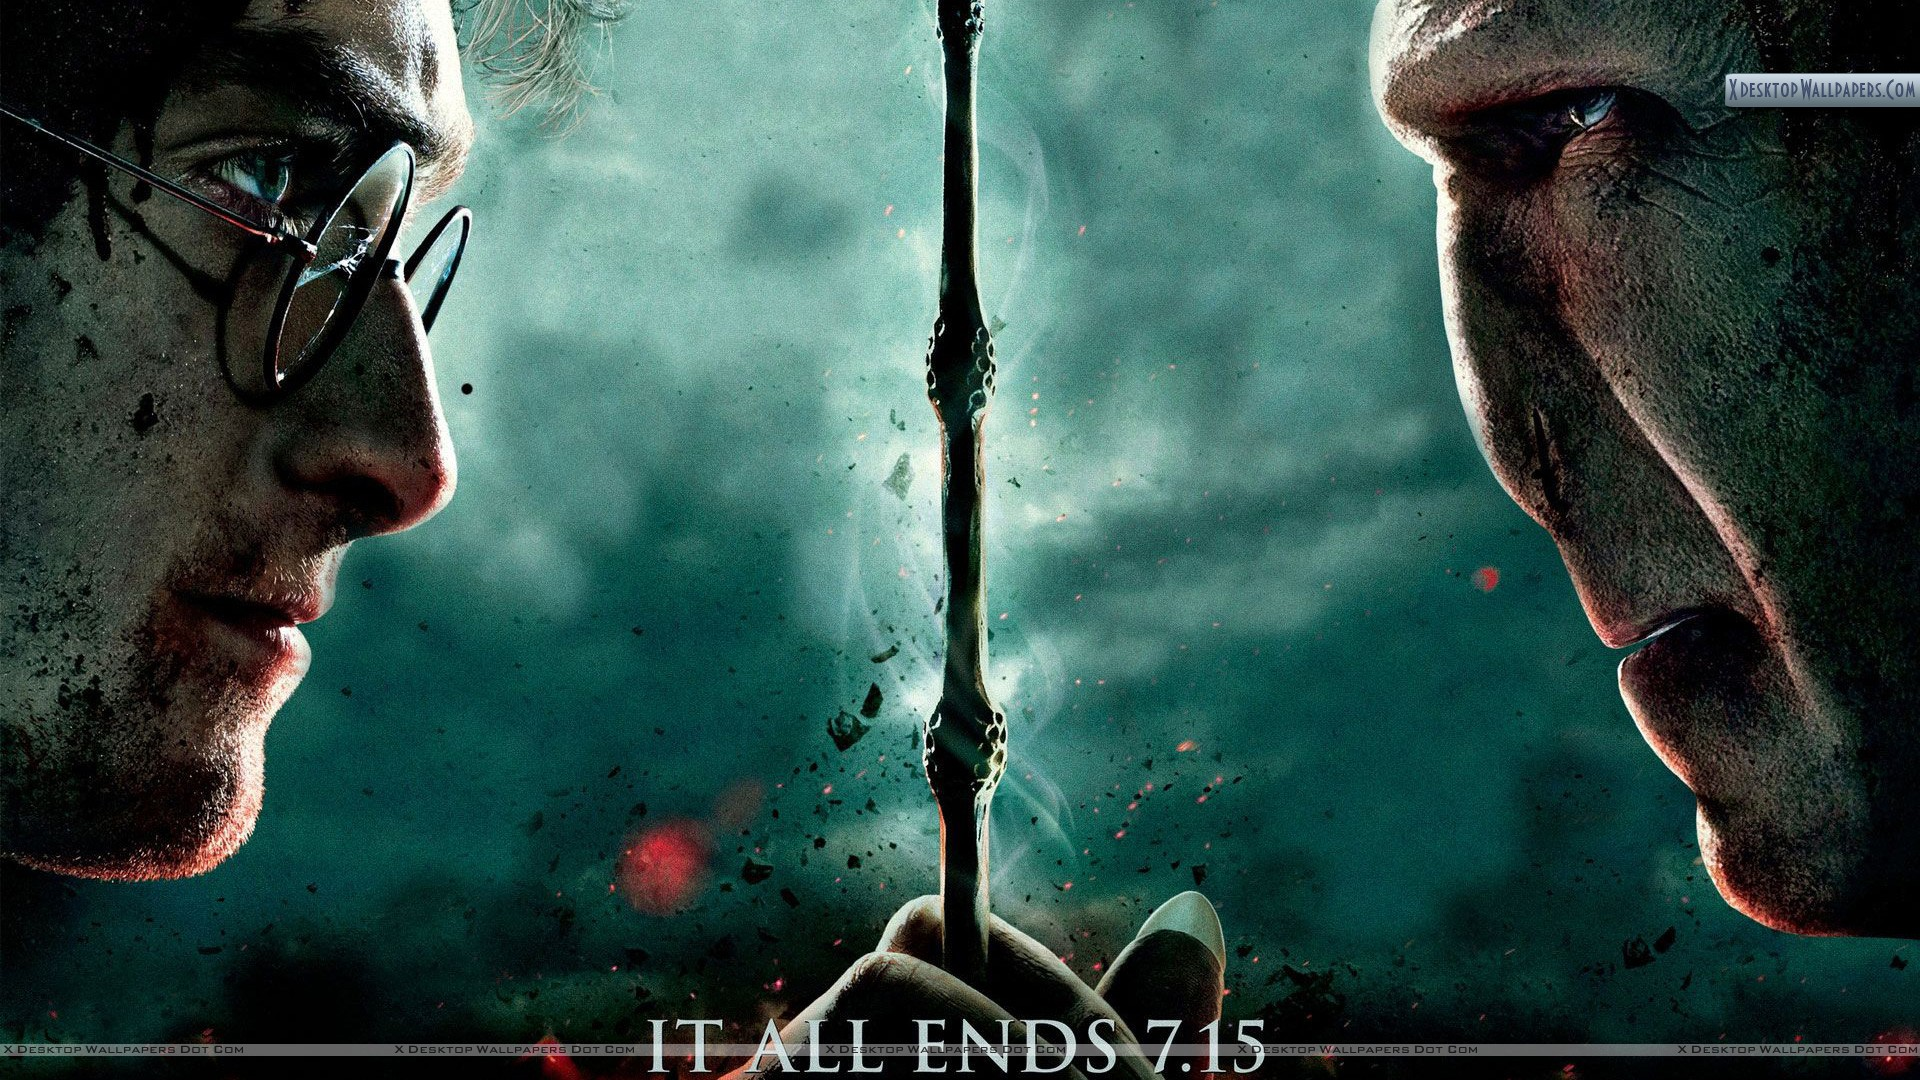 You Are Viewing Wallpaper Titled It All Ends Harry Potter And The Deathly Hallows Part 2